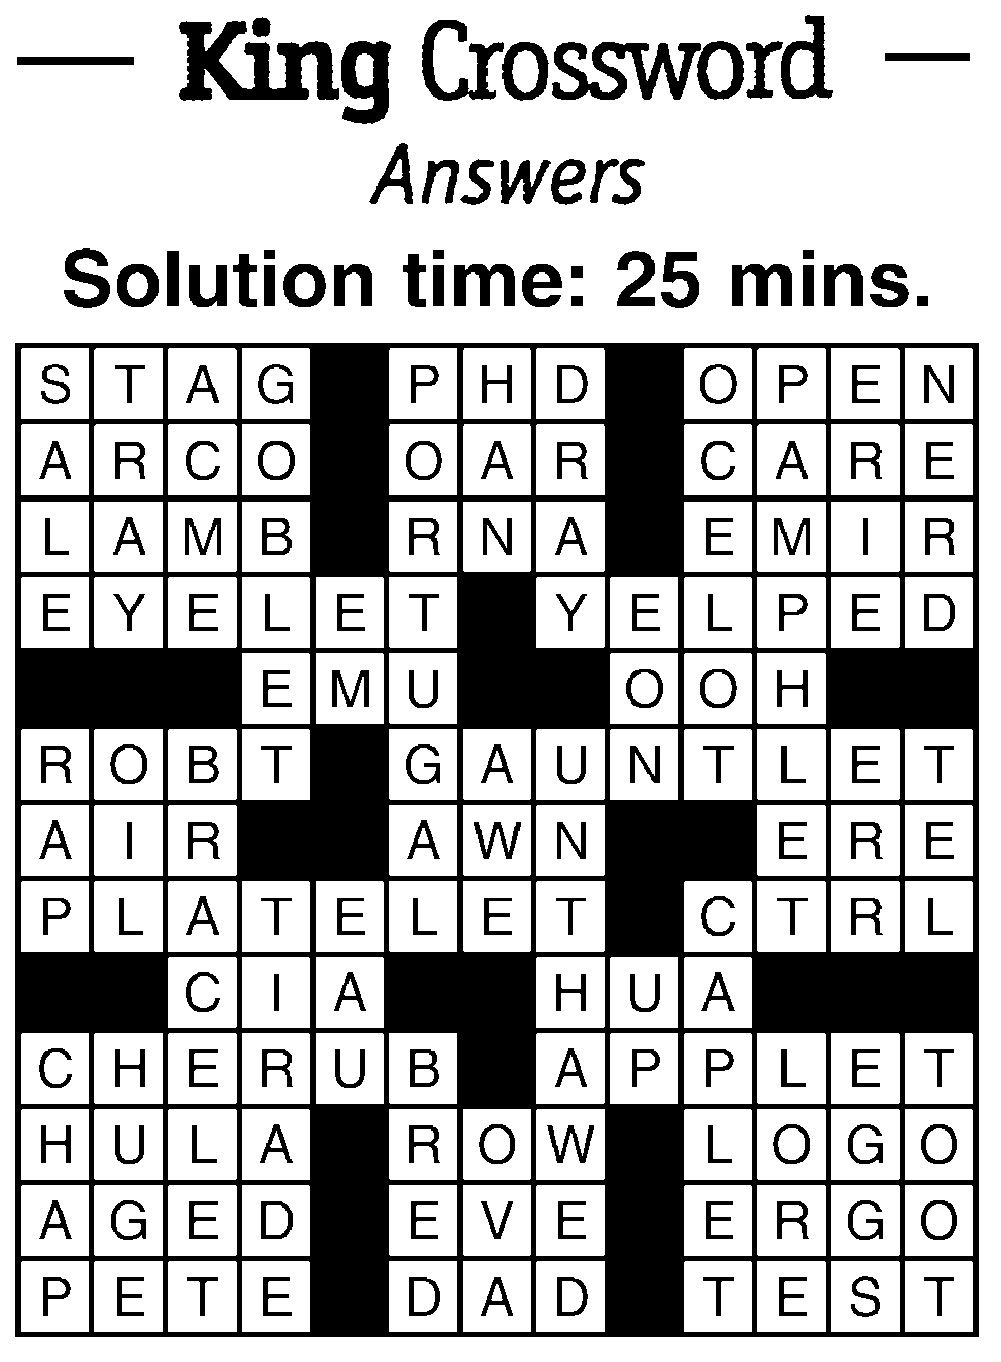 Crossword Puzzle Answers August 31 2017